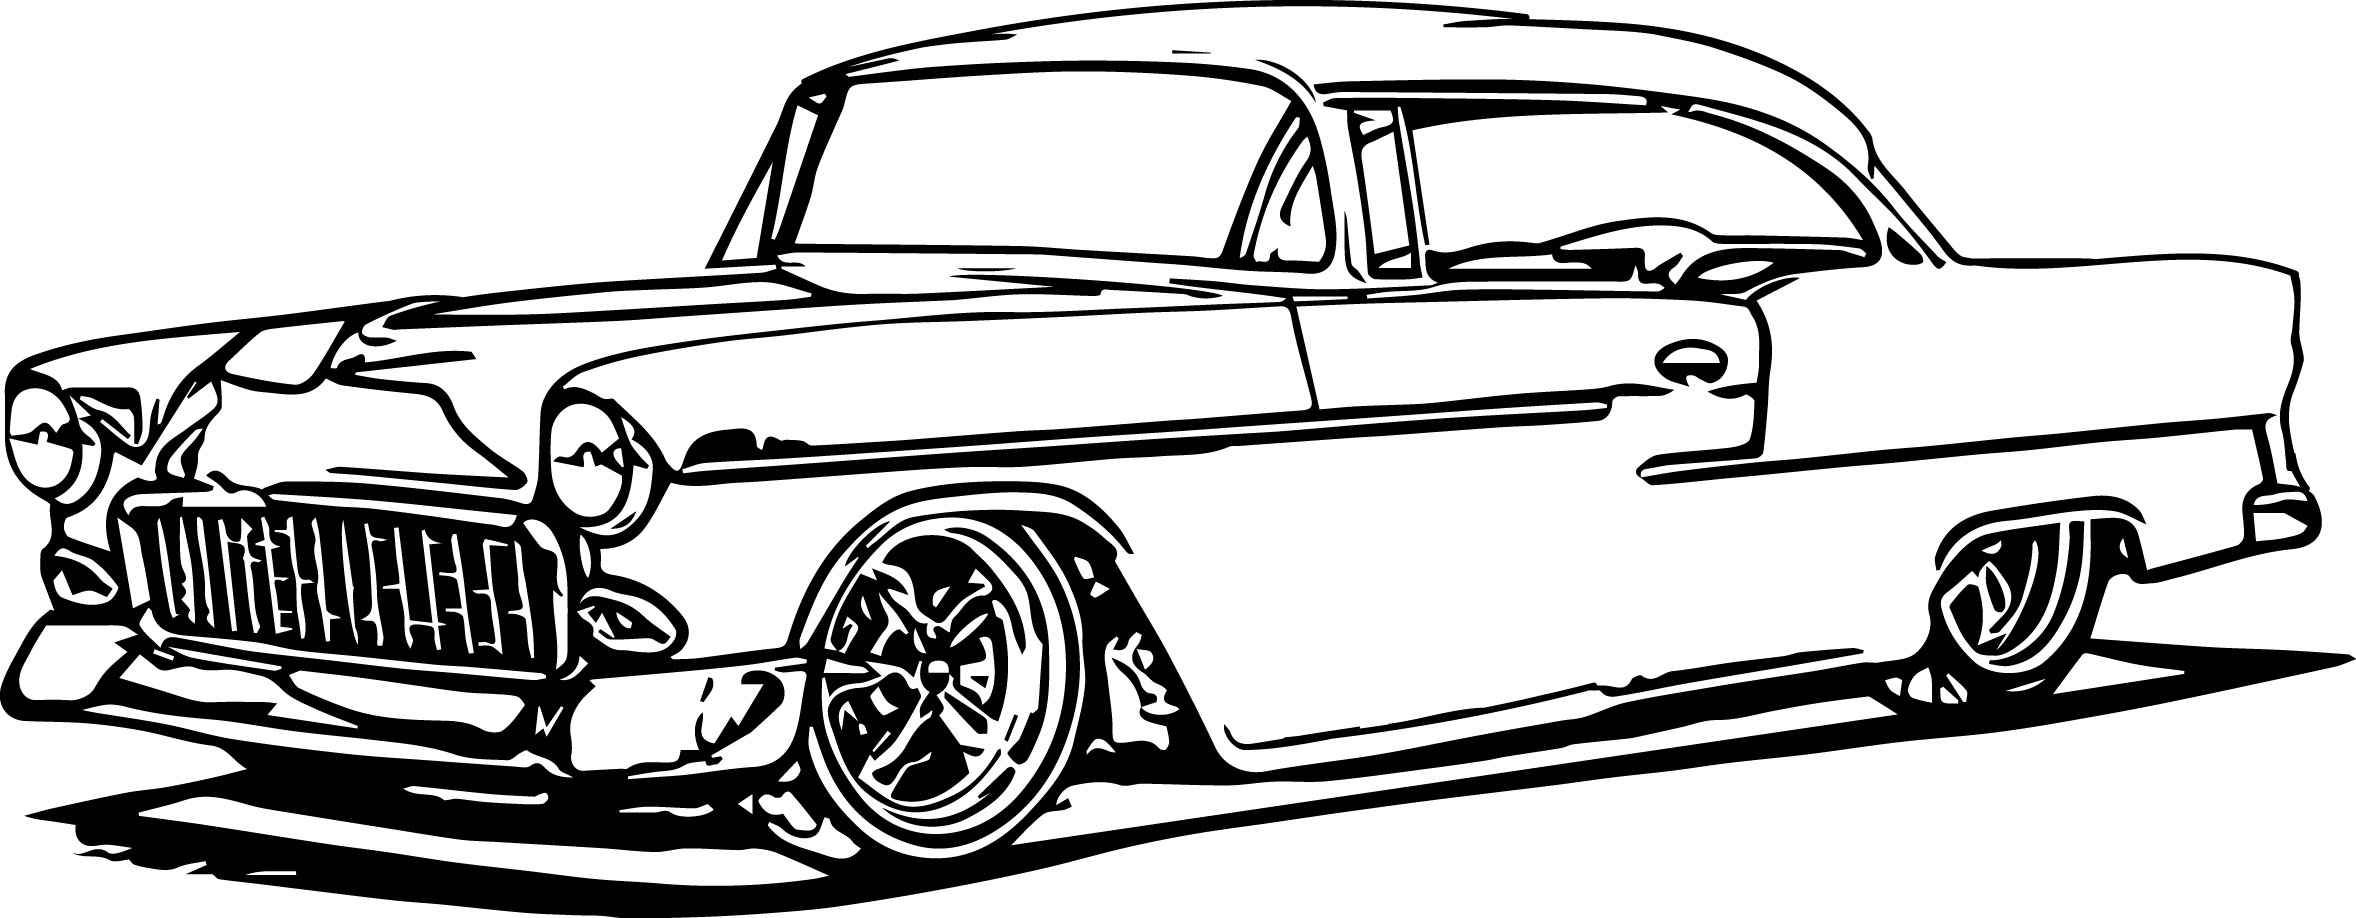 free printable car coloring pages cars coloring pages best coloring pages for kids pages car coloring free printable